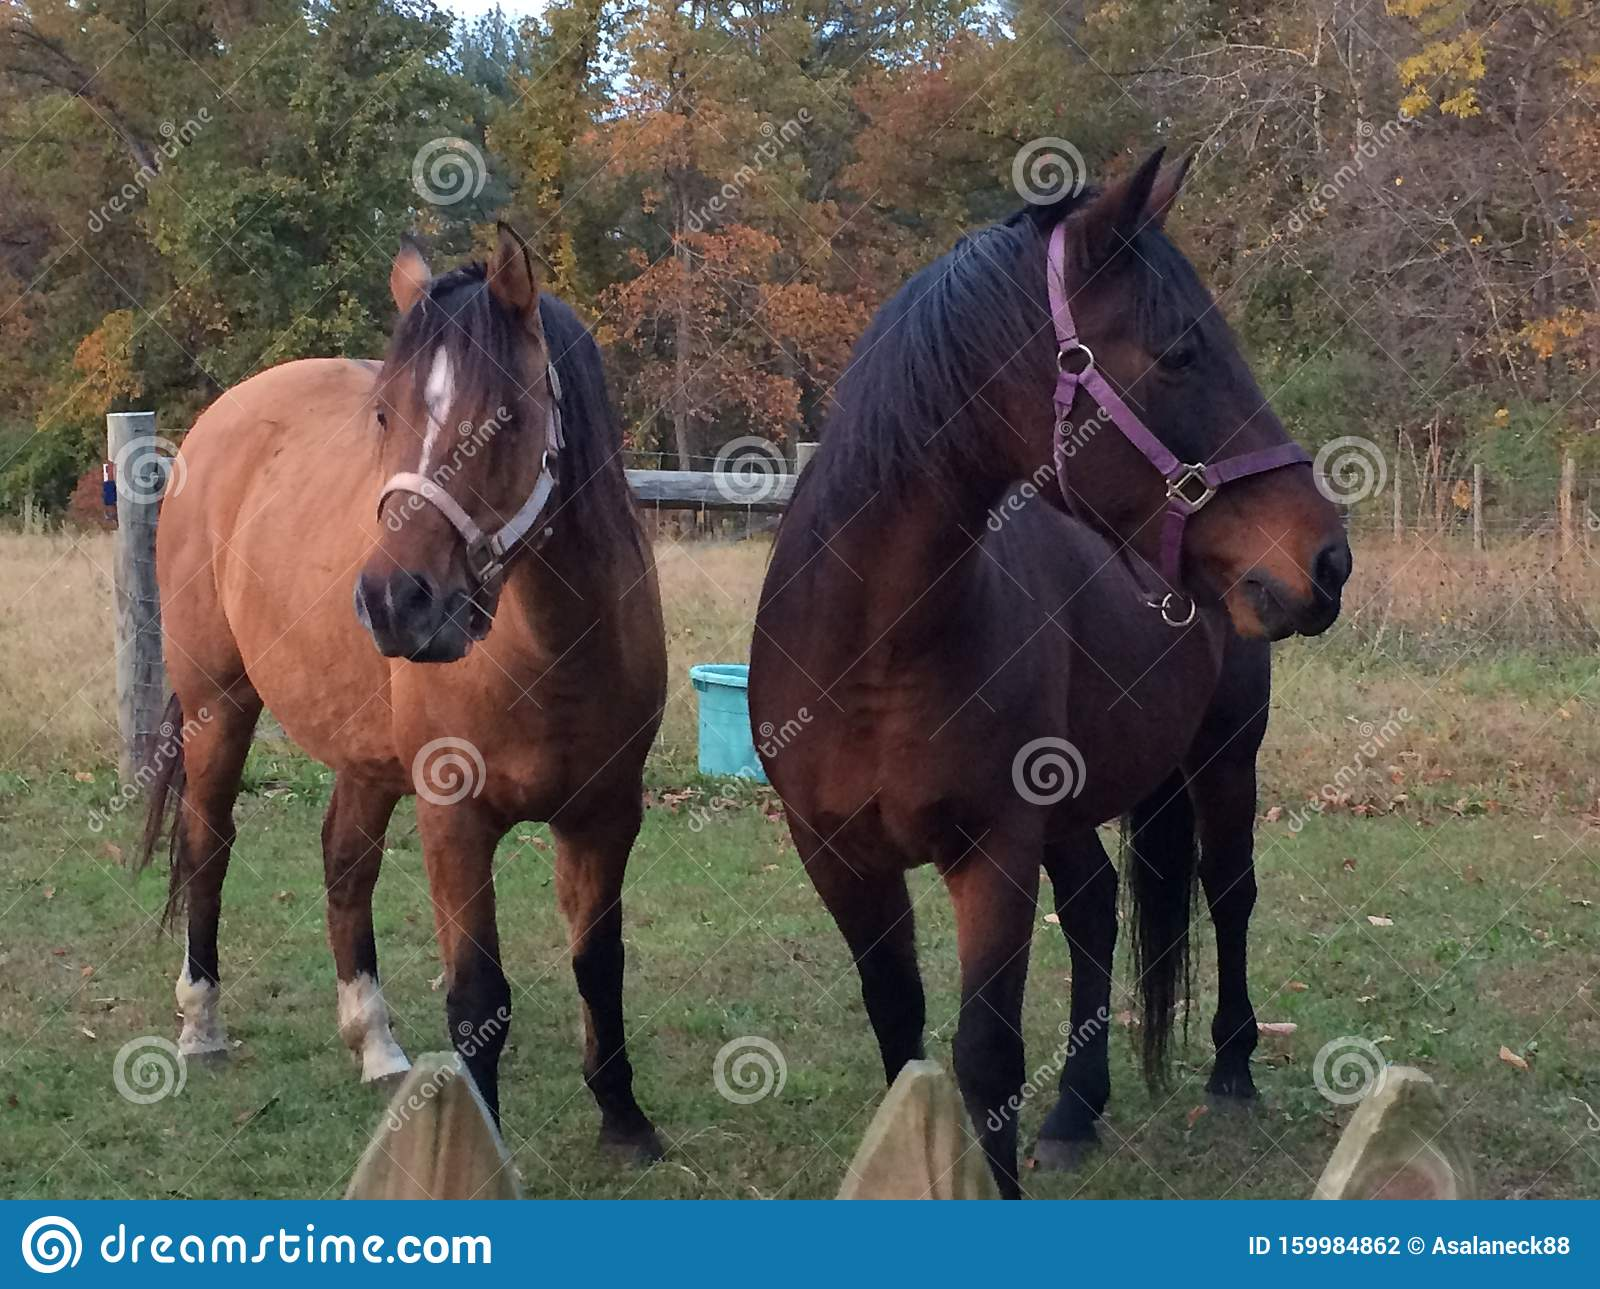 Two Pretty Horses In Autumn Stock Photo Image Of Arabian Horse 159984862